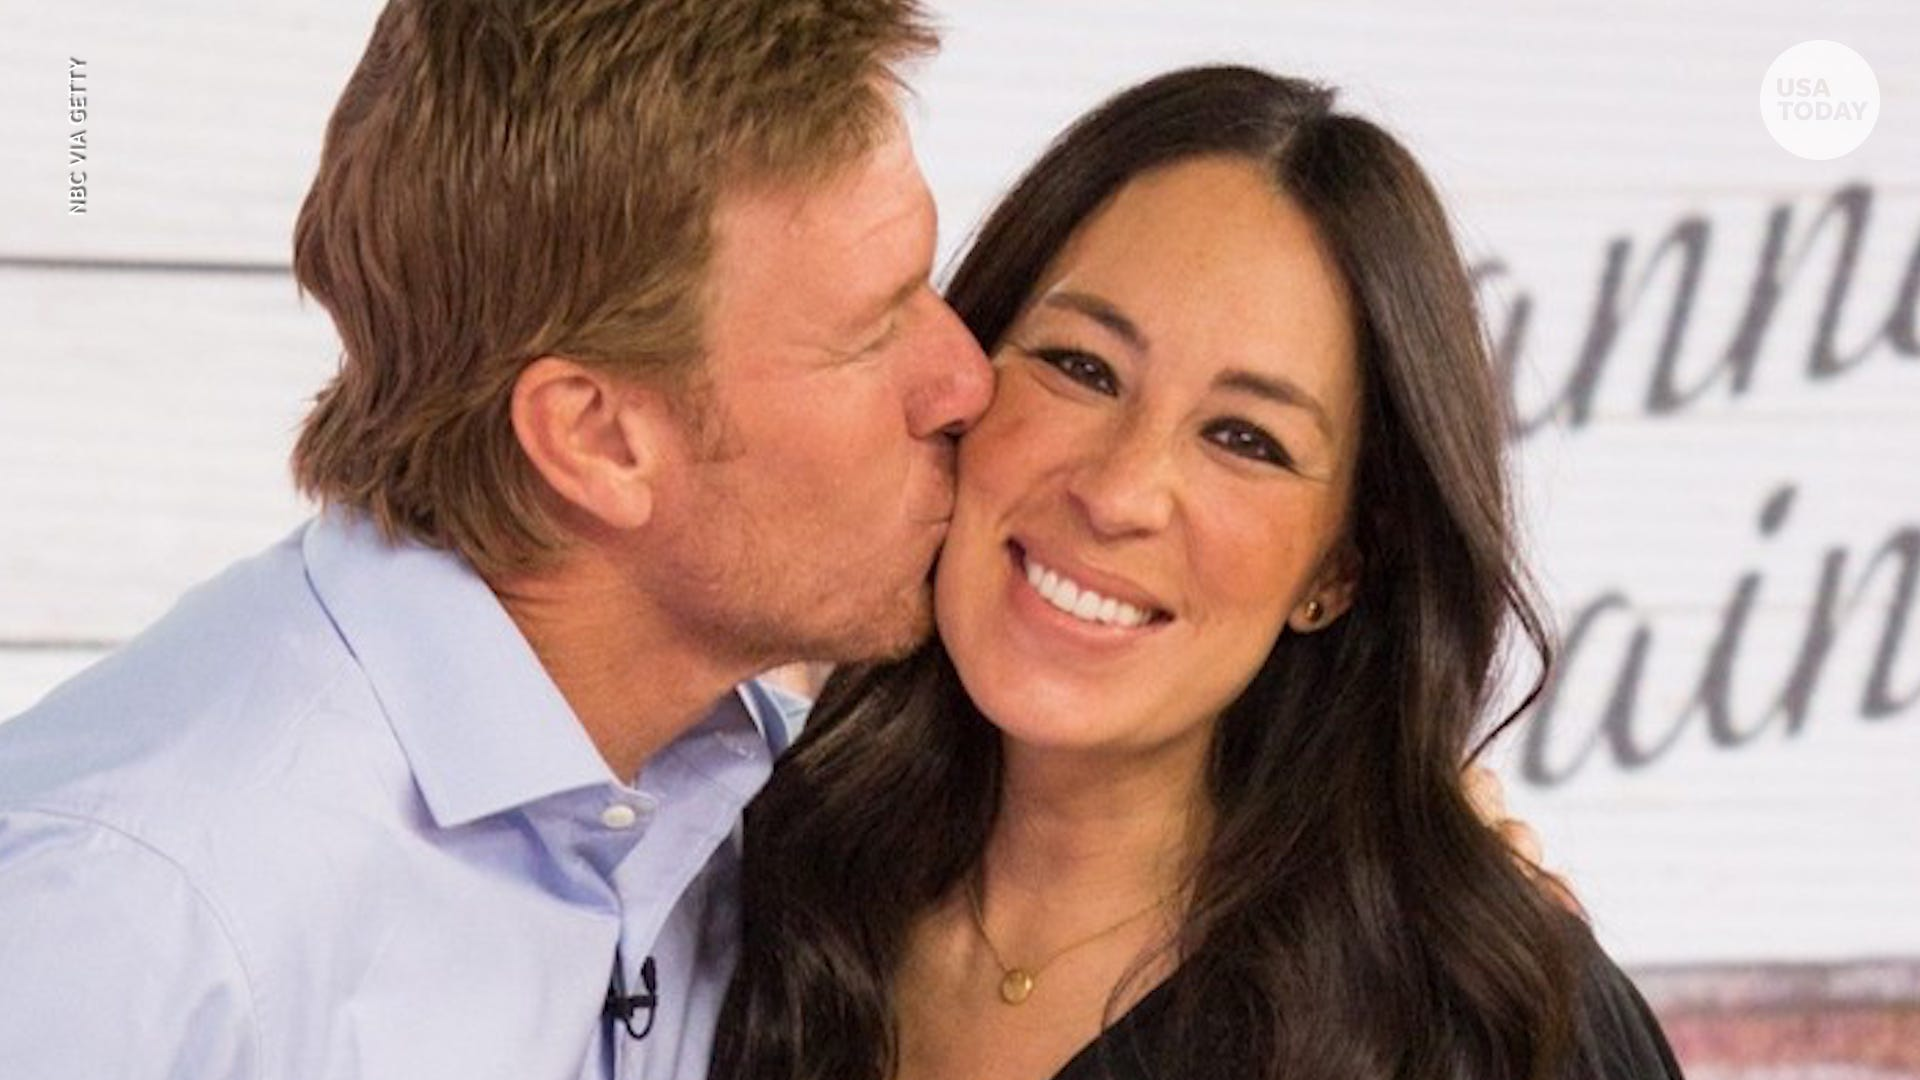 Chip And Joanna Gaines Wedding.5 Things We Love About Chip And Joanna Gaines